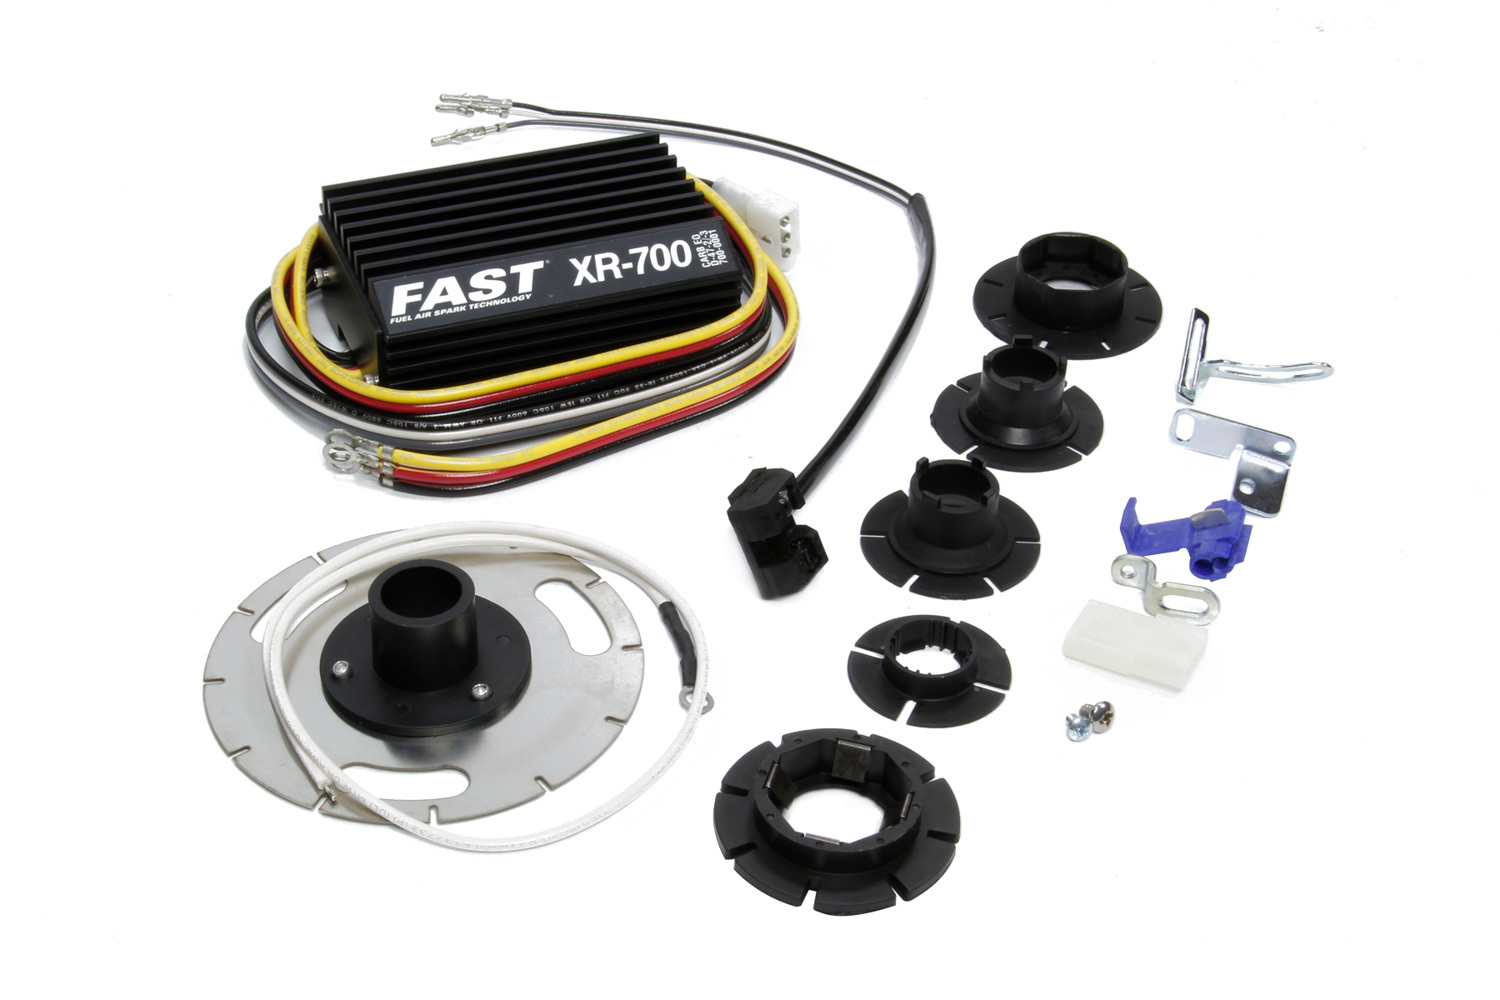 Fast Electronics 700-0300 Ignition Conversion Kit, XR700, Electronic, Optical Trigger, British Import, Lucas OPUS Distributor, Kit